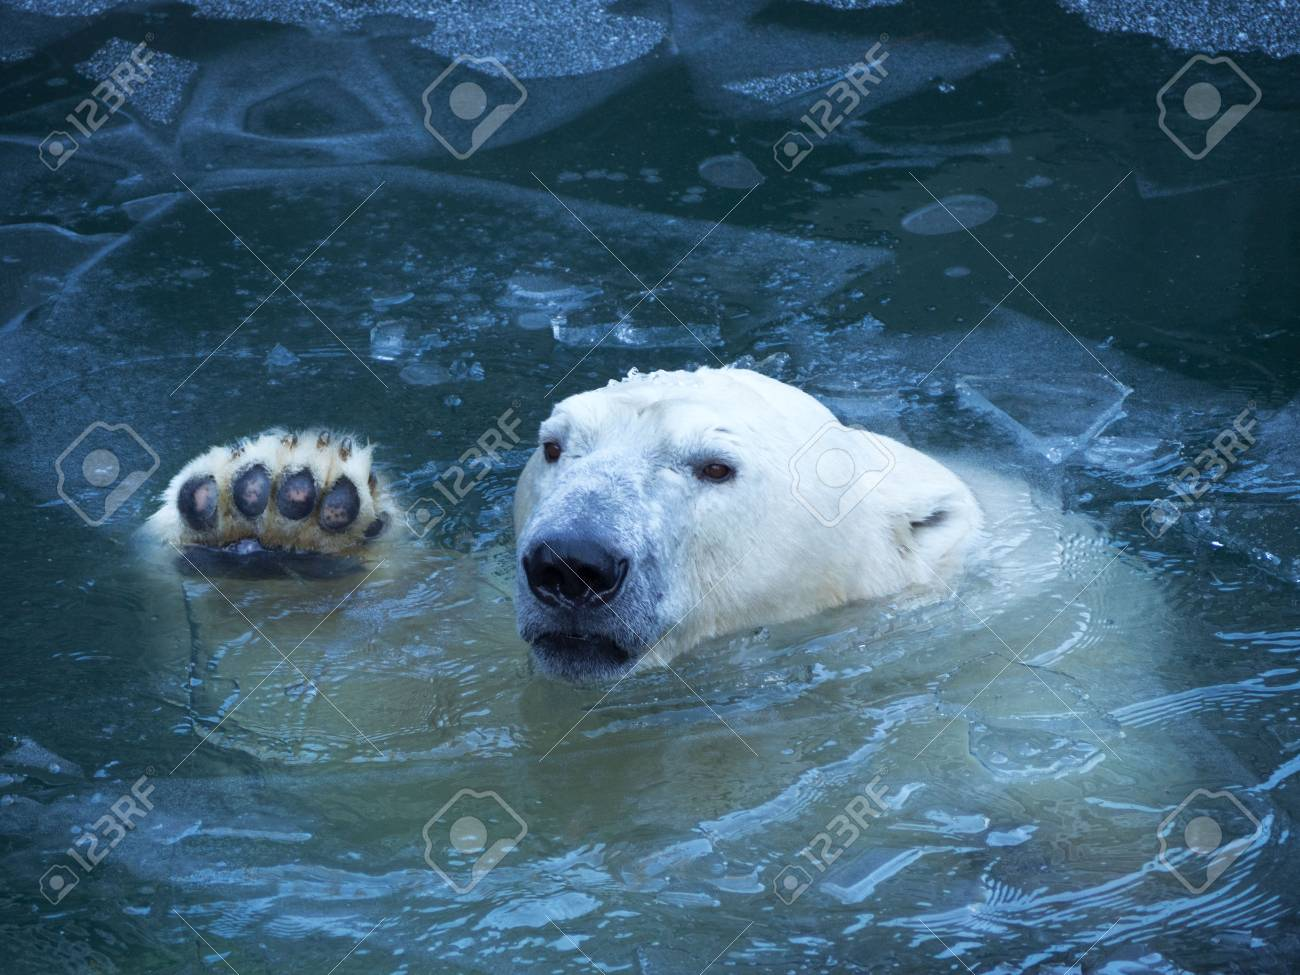 The polar bear waves his paw. Emerges from the water breaking a thin layer of ice. Pads on the paw. - 91310125